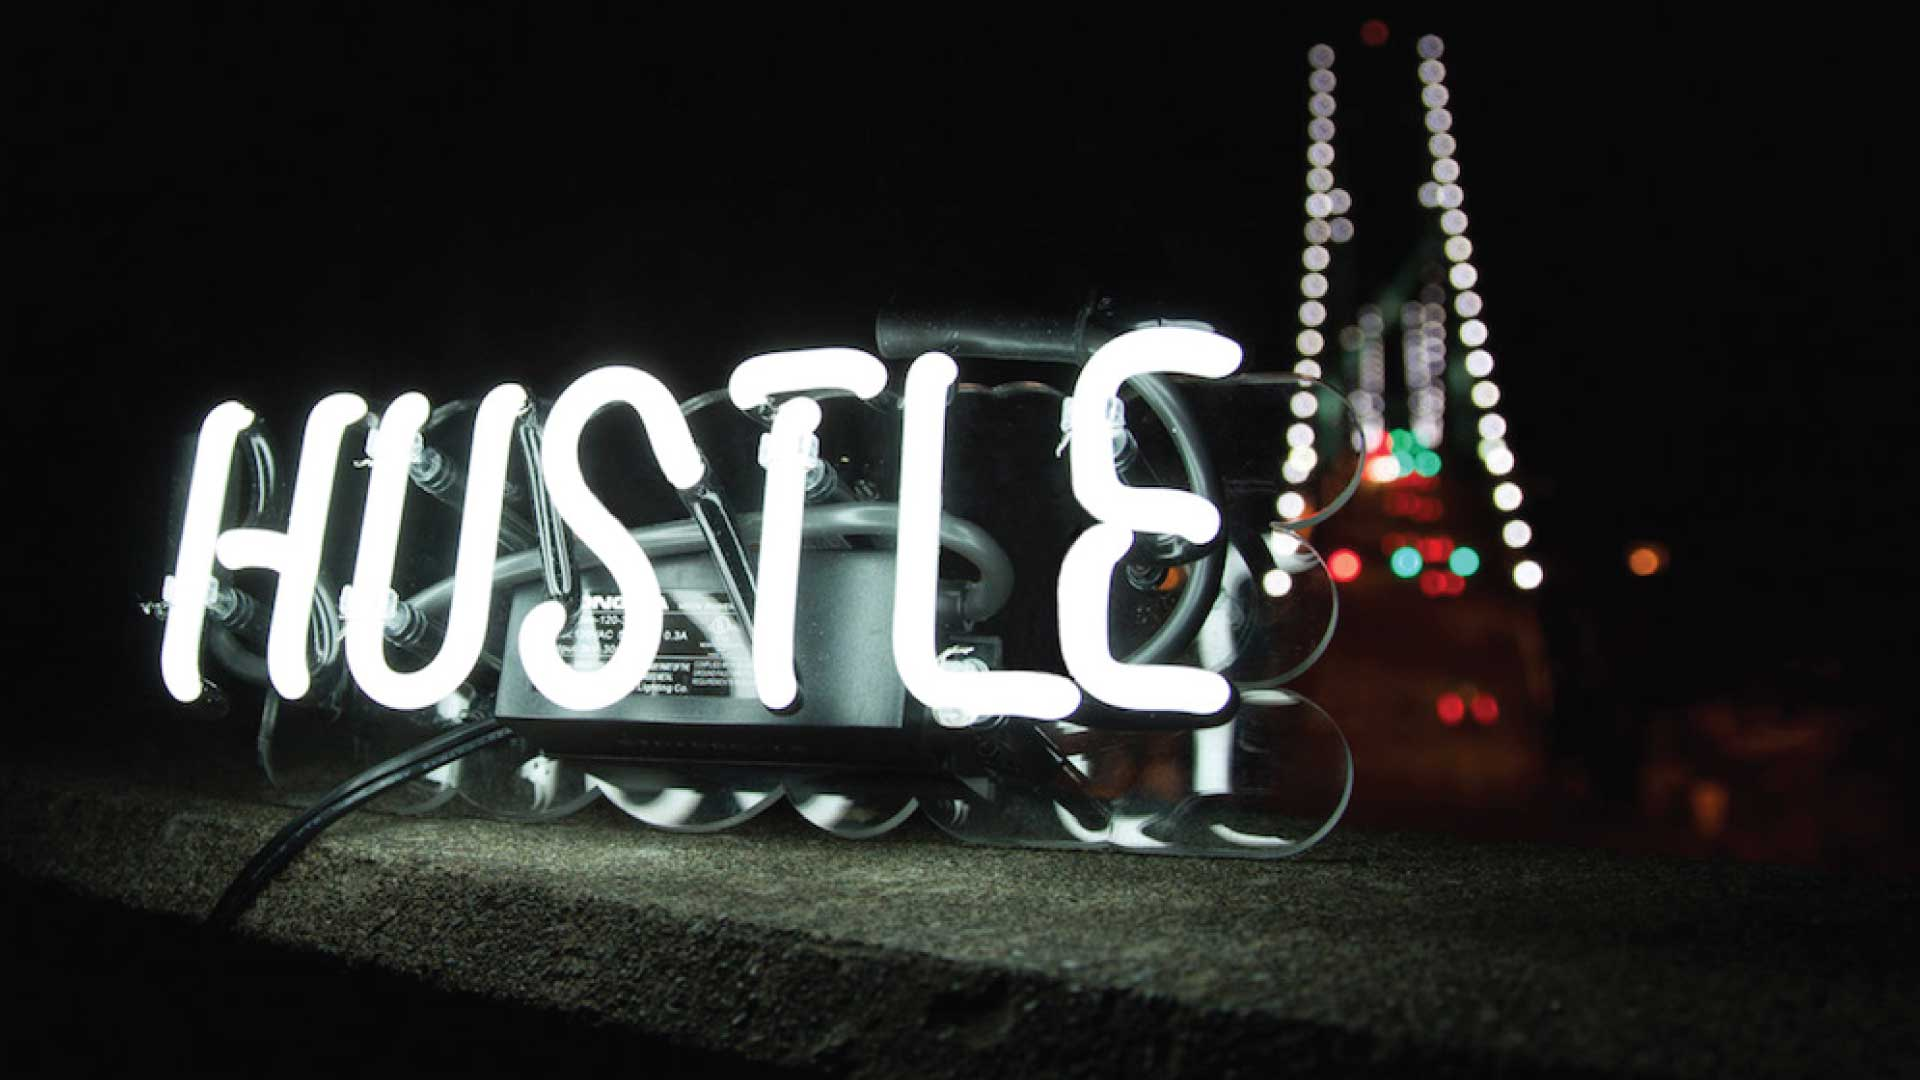 hustle hd neon sign wallpaper 66619